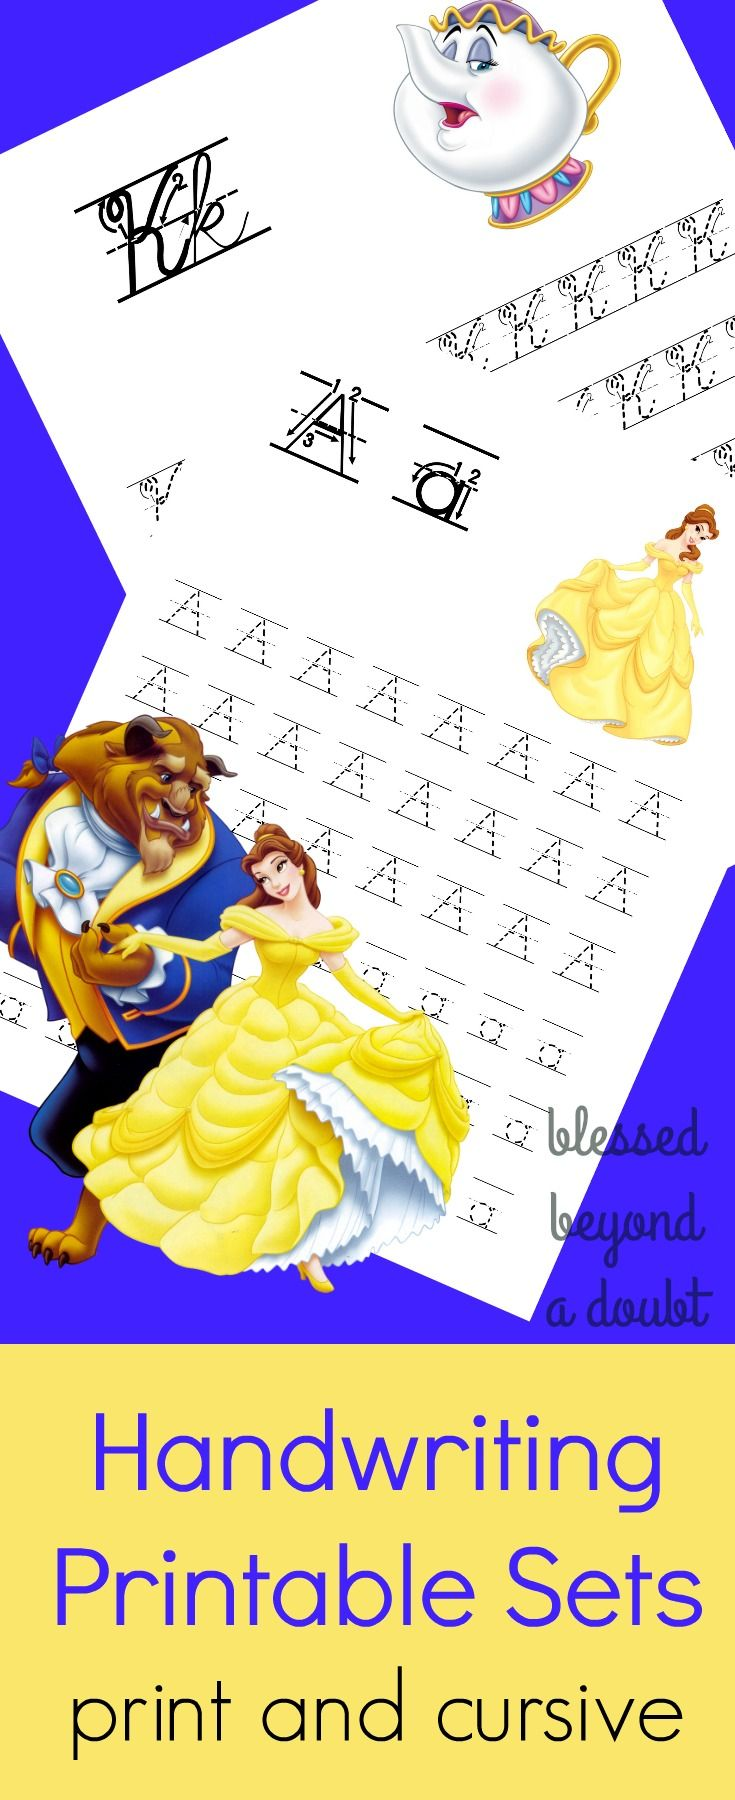 FREE Beauty and the Beast handwriting printable set. The packets come in print and cursive editions.